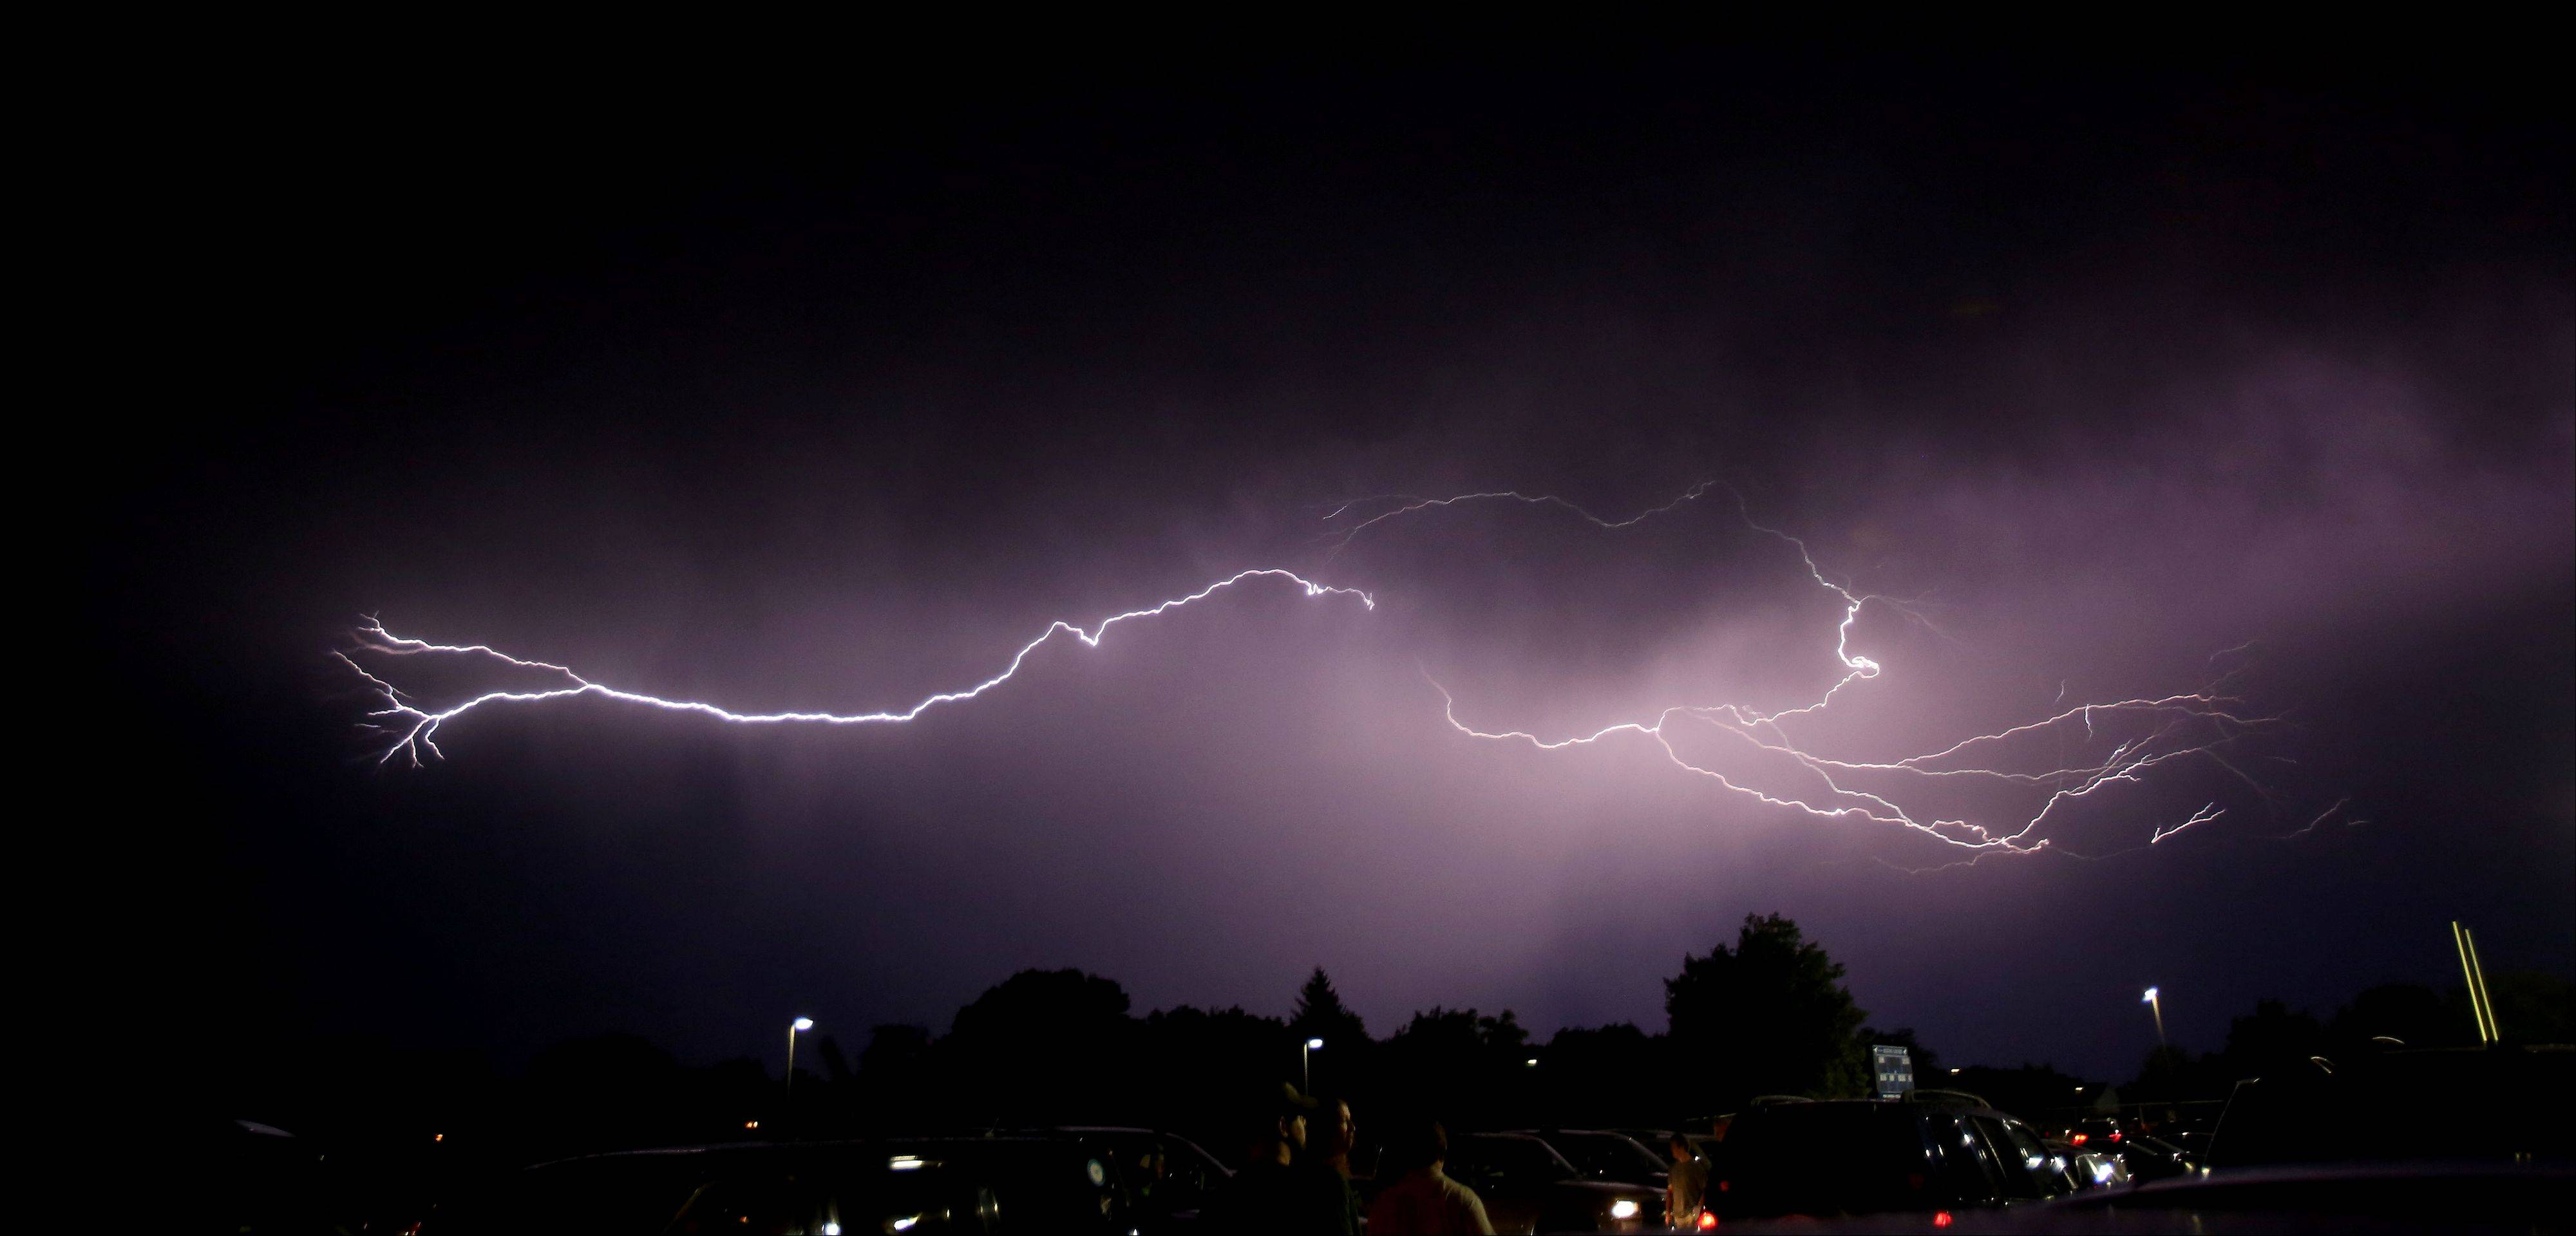 Bev Horne/bhorne@dailyherald.com Streaks of lightning across the sky over the parking lot at Downers Grove South Friday night, where the football game against Benet had to be postponed until Saturday.